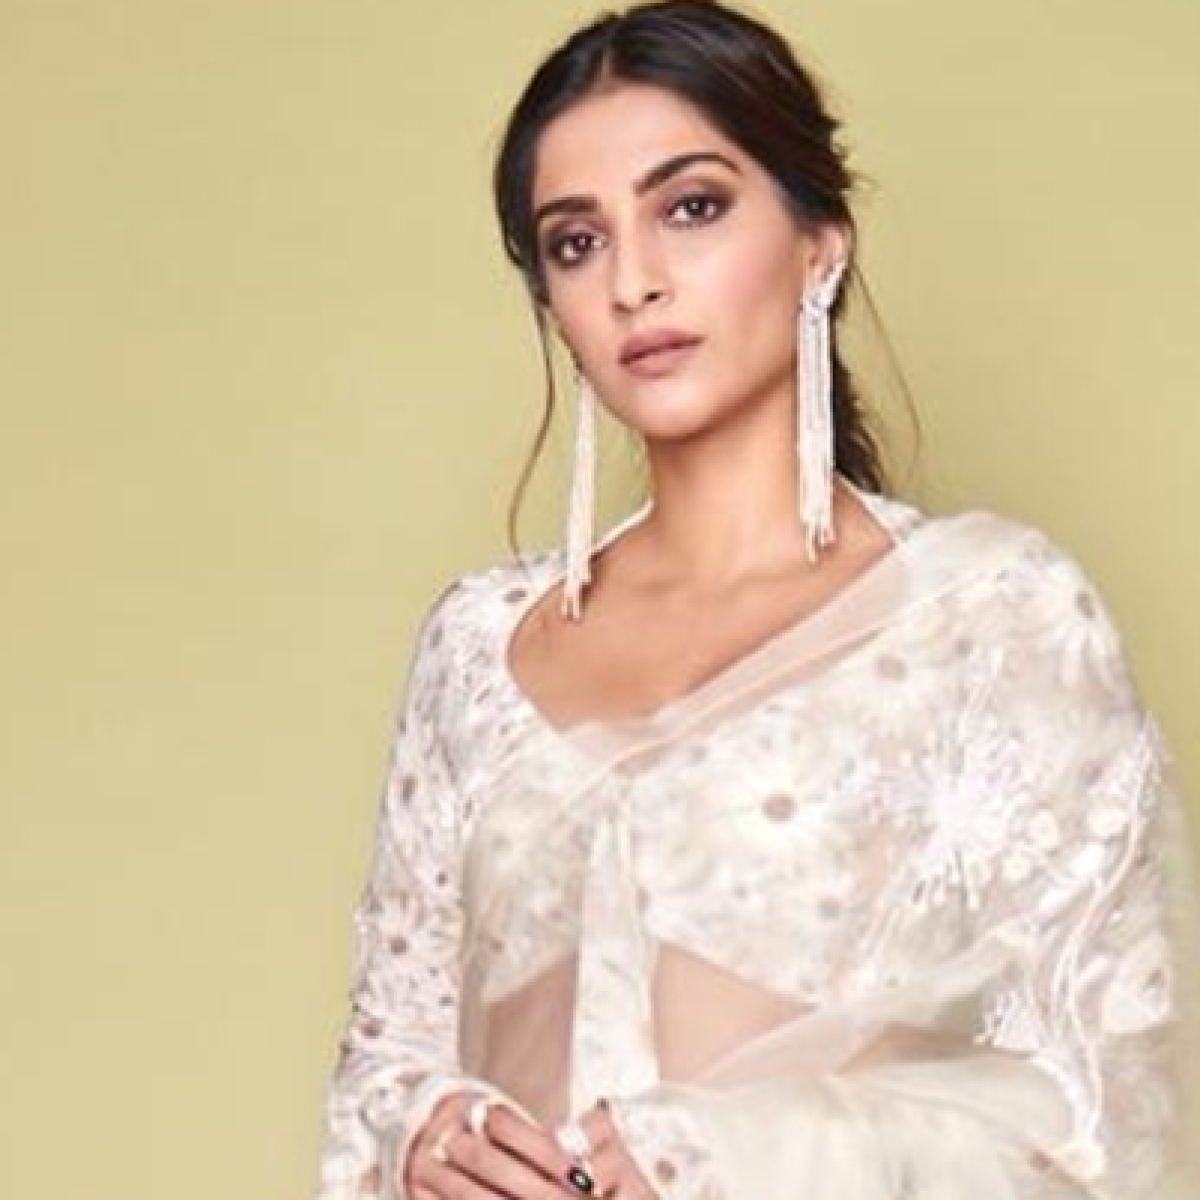 Sonam Kapoor slams Instagram after it refuses to take down 'death threat'